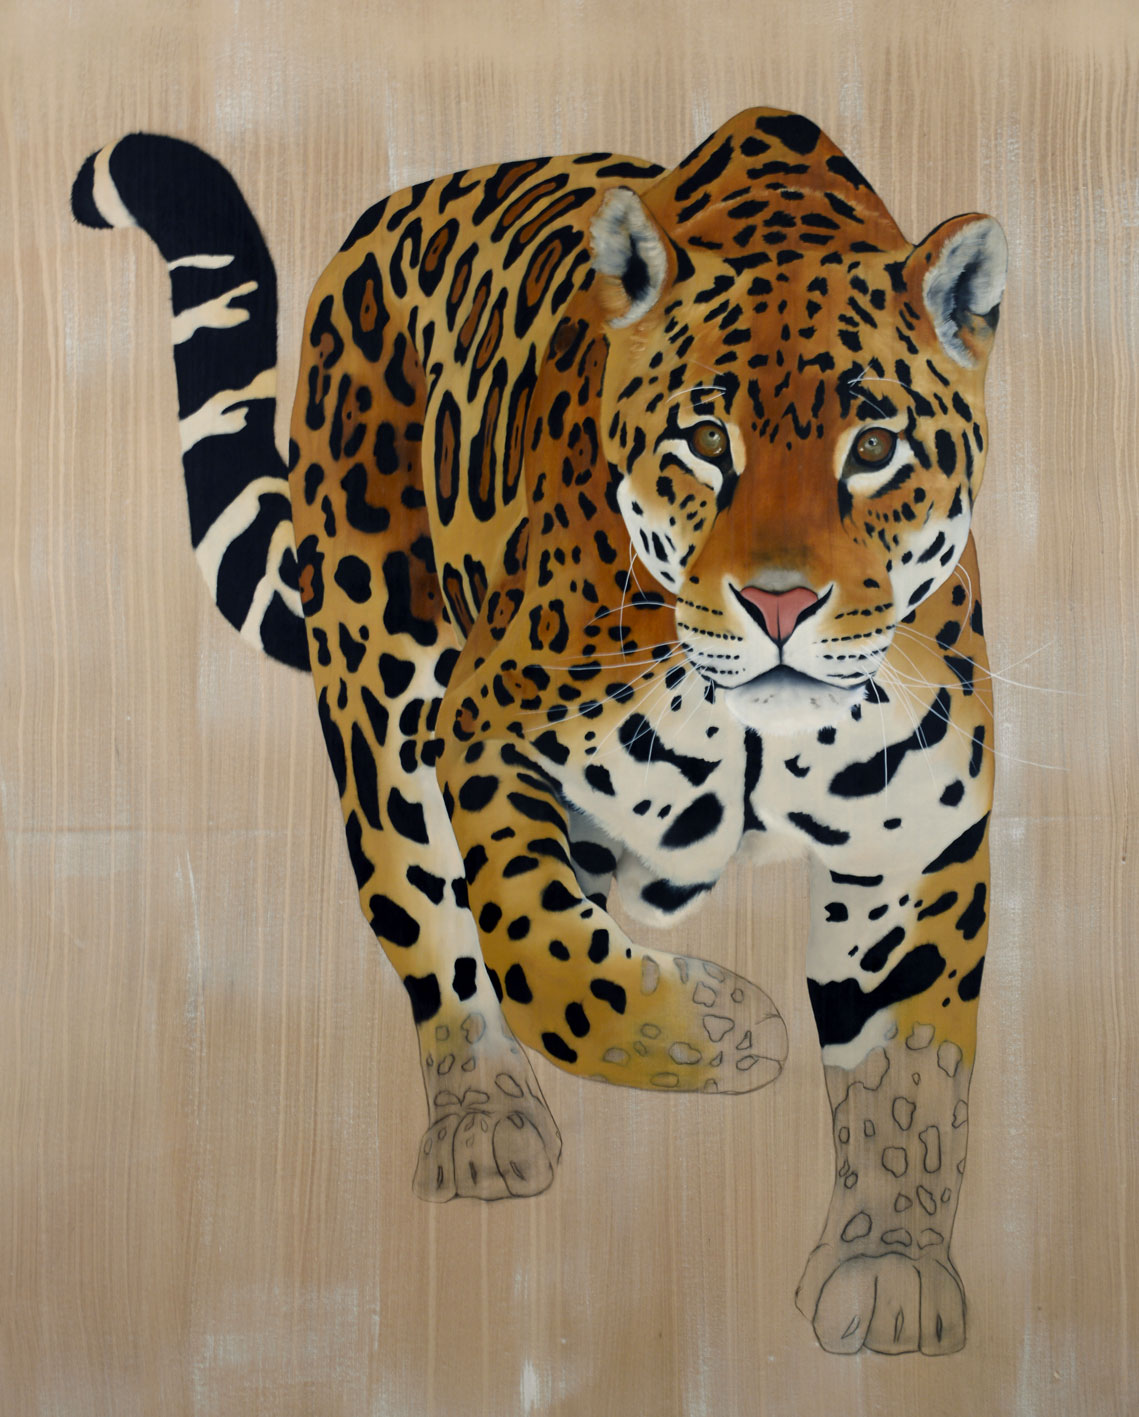 PANTHERA ONCA divers Thierry Bisch painter animals painting art decoration hotel design interior luxury nature biodiversity conservation